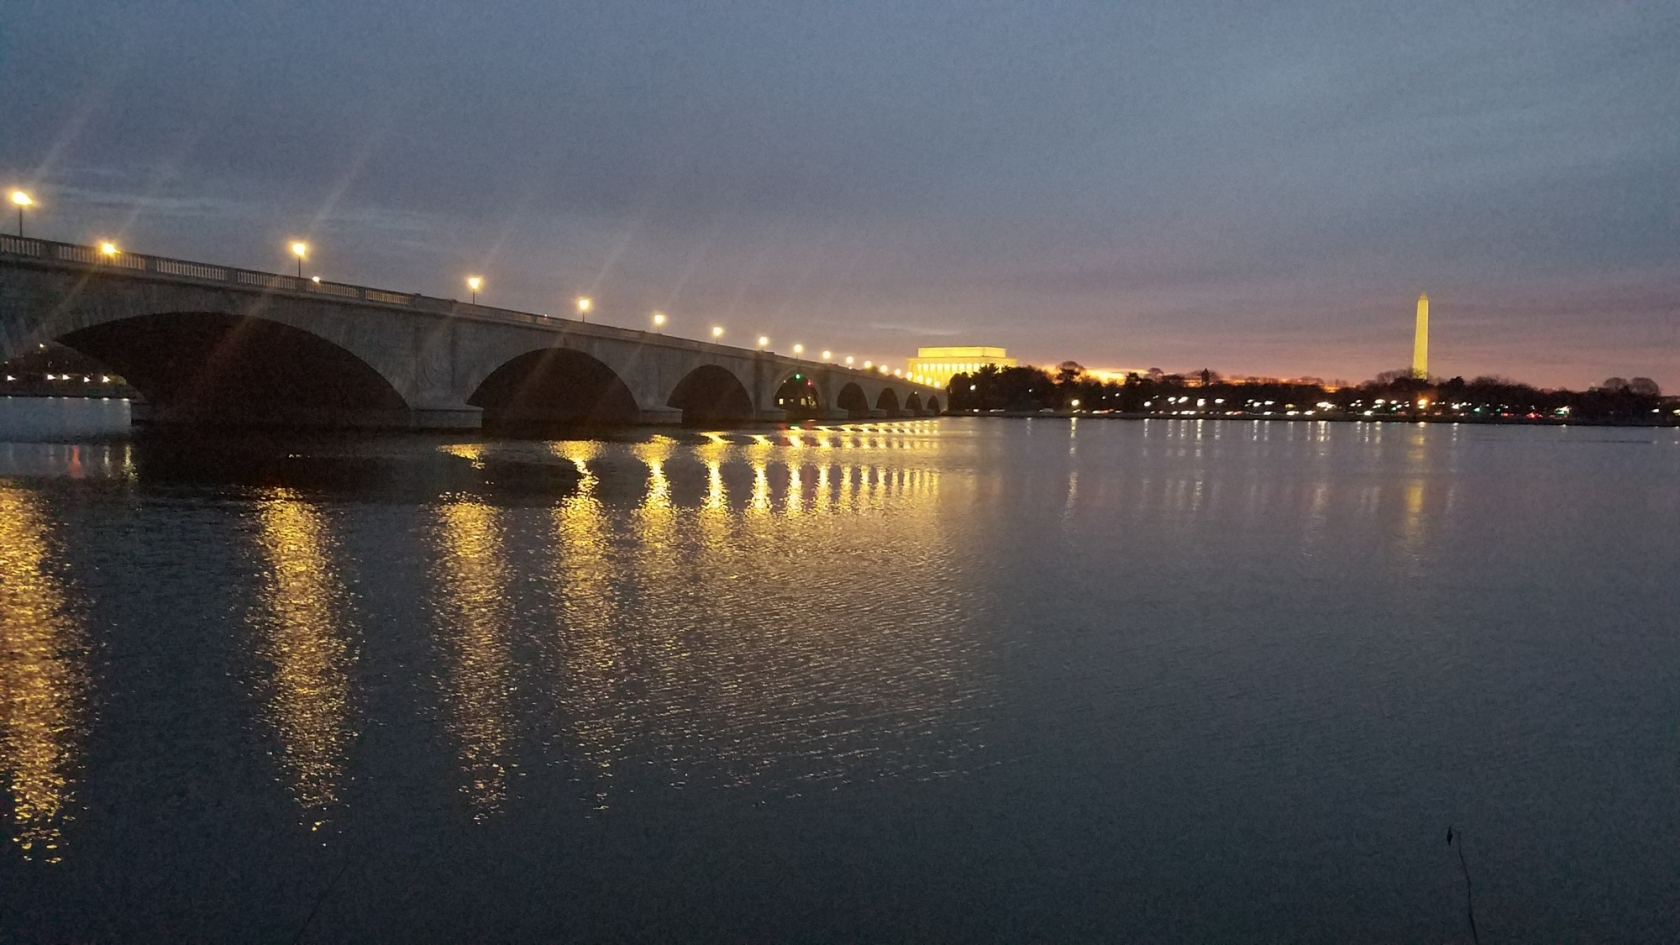 Arlington Memorial Bridge dim light with lights reflecting off of water and memorials in the distance